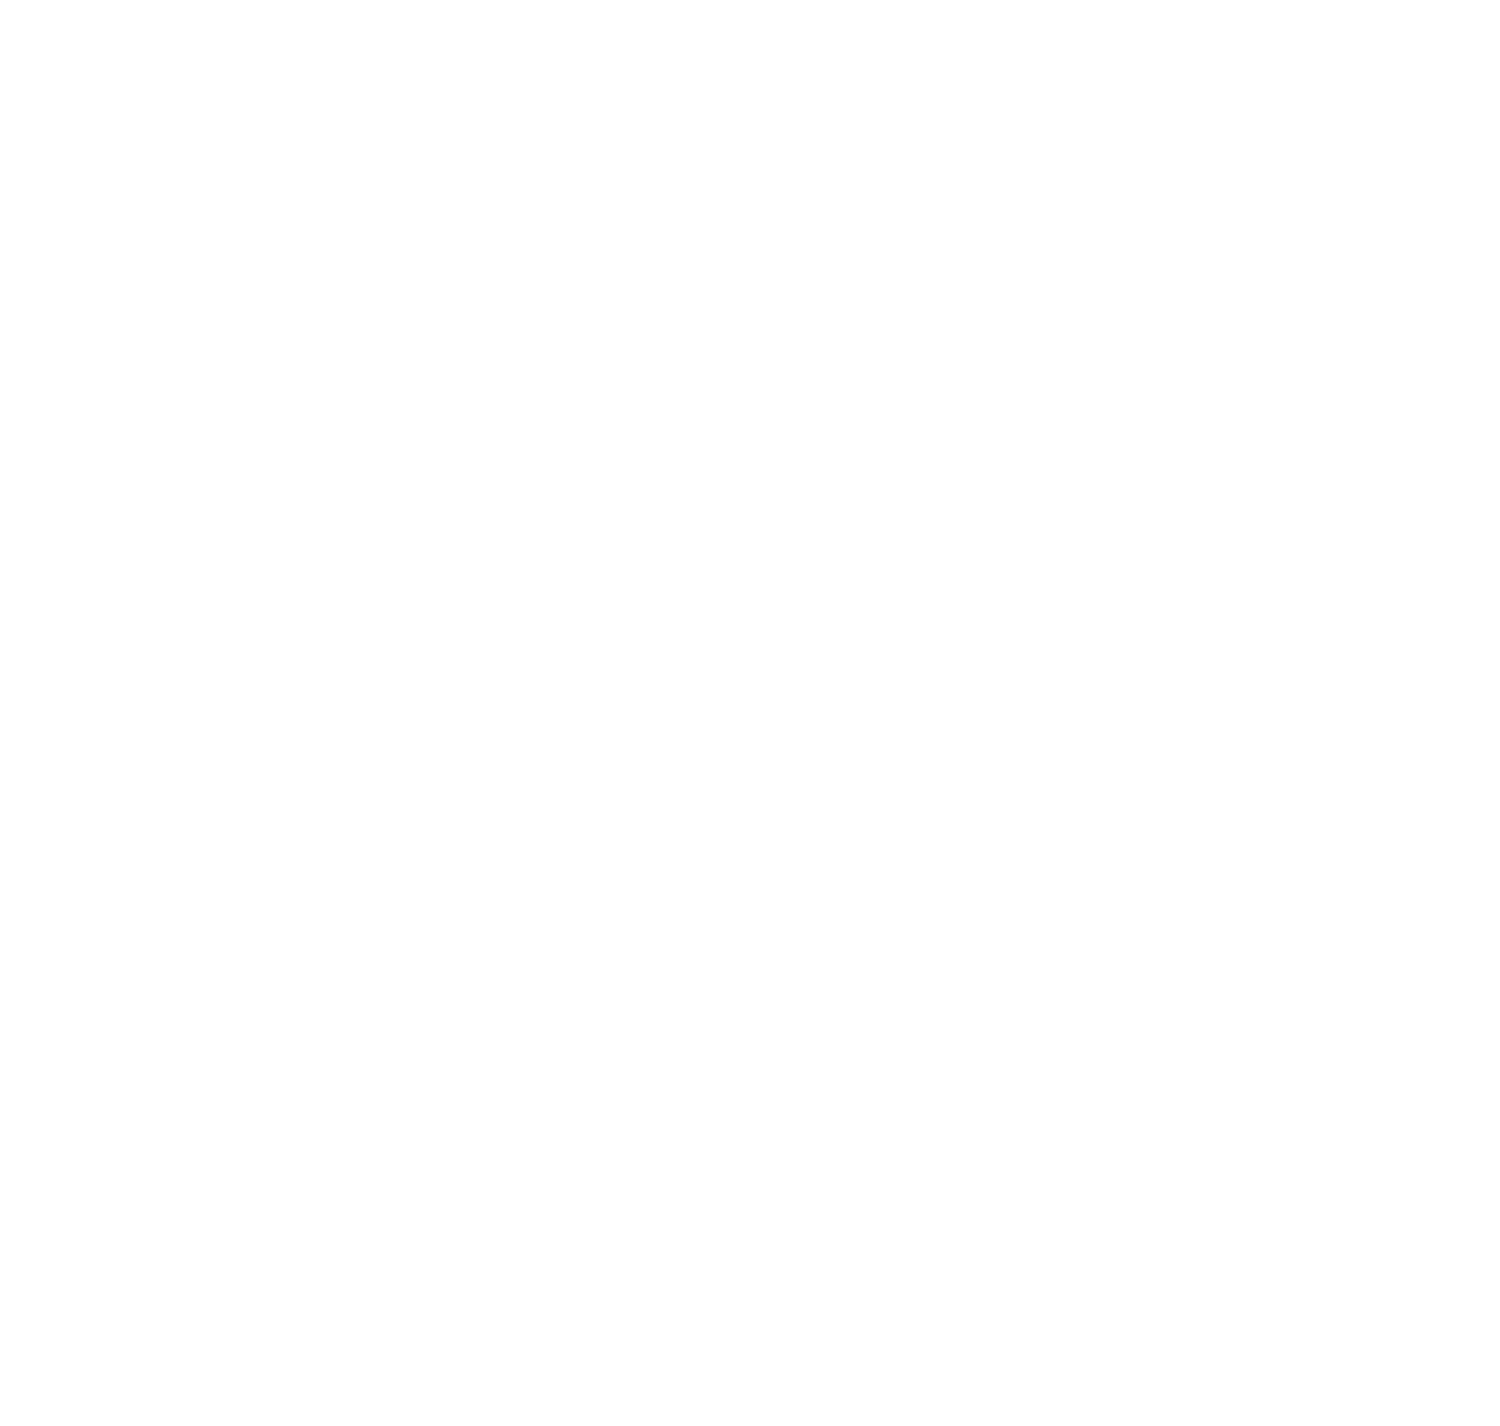 Kenneth MacLeod: Theatre Design